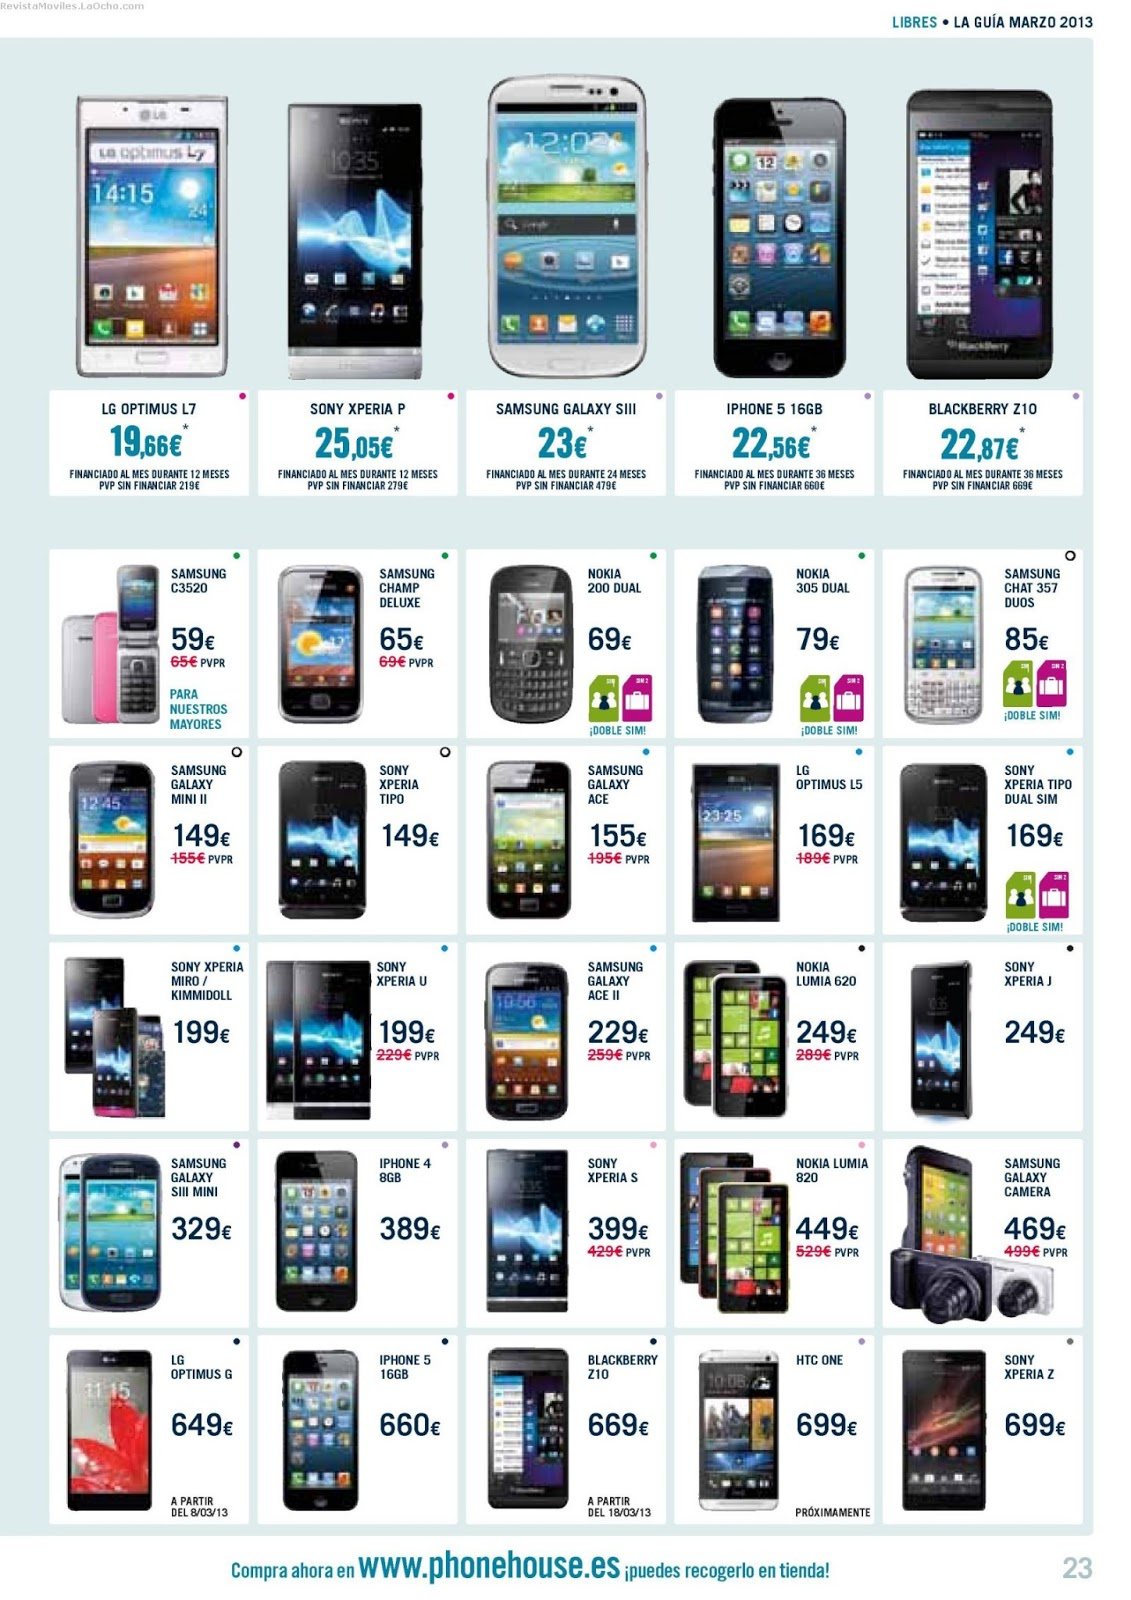 Ofertas Moviles Libres The Phone House Revista Móviles Catálogo Phonehouse Marzo 2013